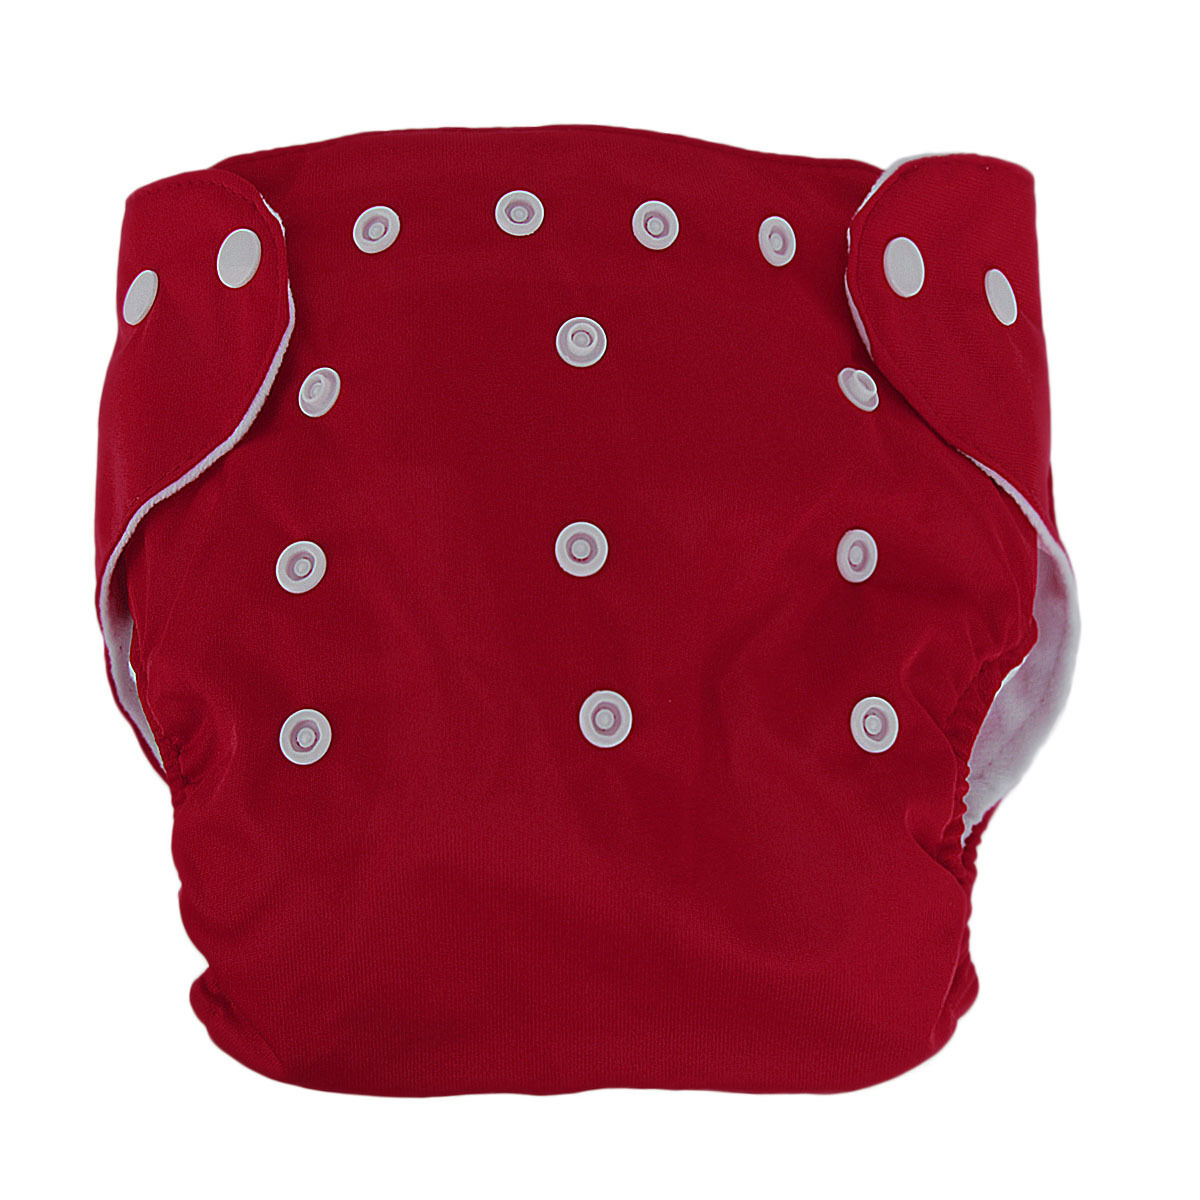 5pcs+ 5Inserts Adjustable Reusable Baby Washable Infant Nappy Soft Cloth Diapers Red